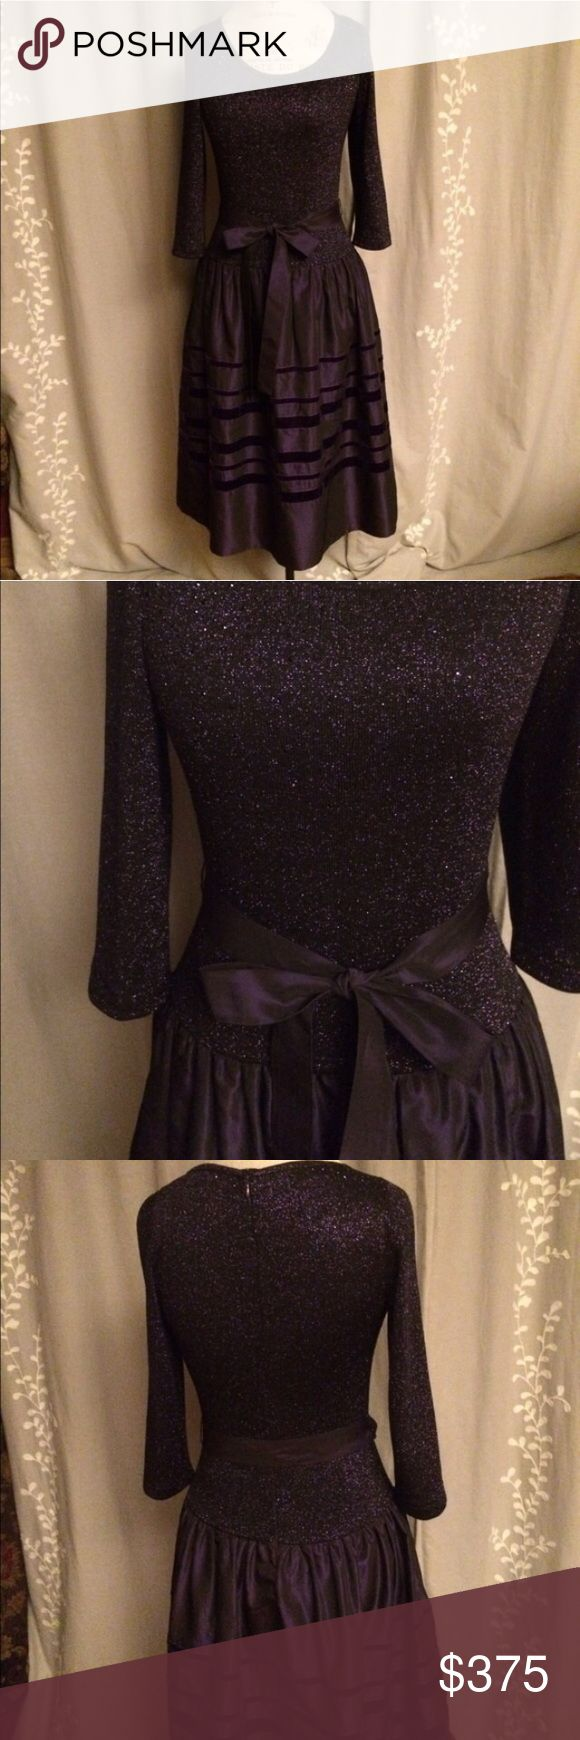 """St. John purple festive dress Only worn twice, fabulous dark purple dress with sparkly stretchy top. Very versatile and figure flattering. Perfect for any special occasion!  Measurements: breast 34"""" but can stretch up to 38"""",  waist 32"""". St. John Dresses"""